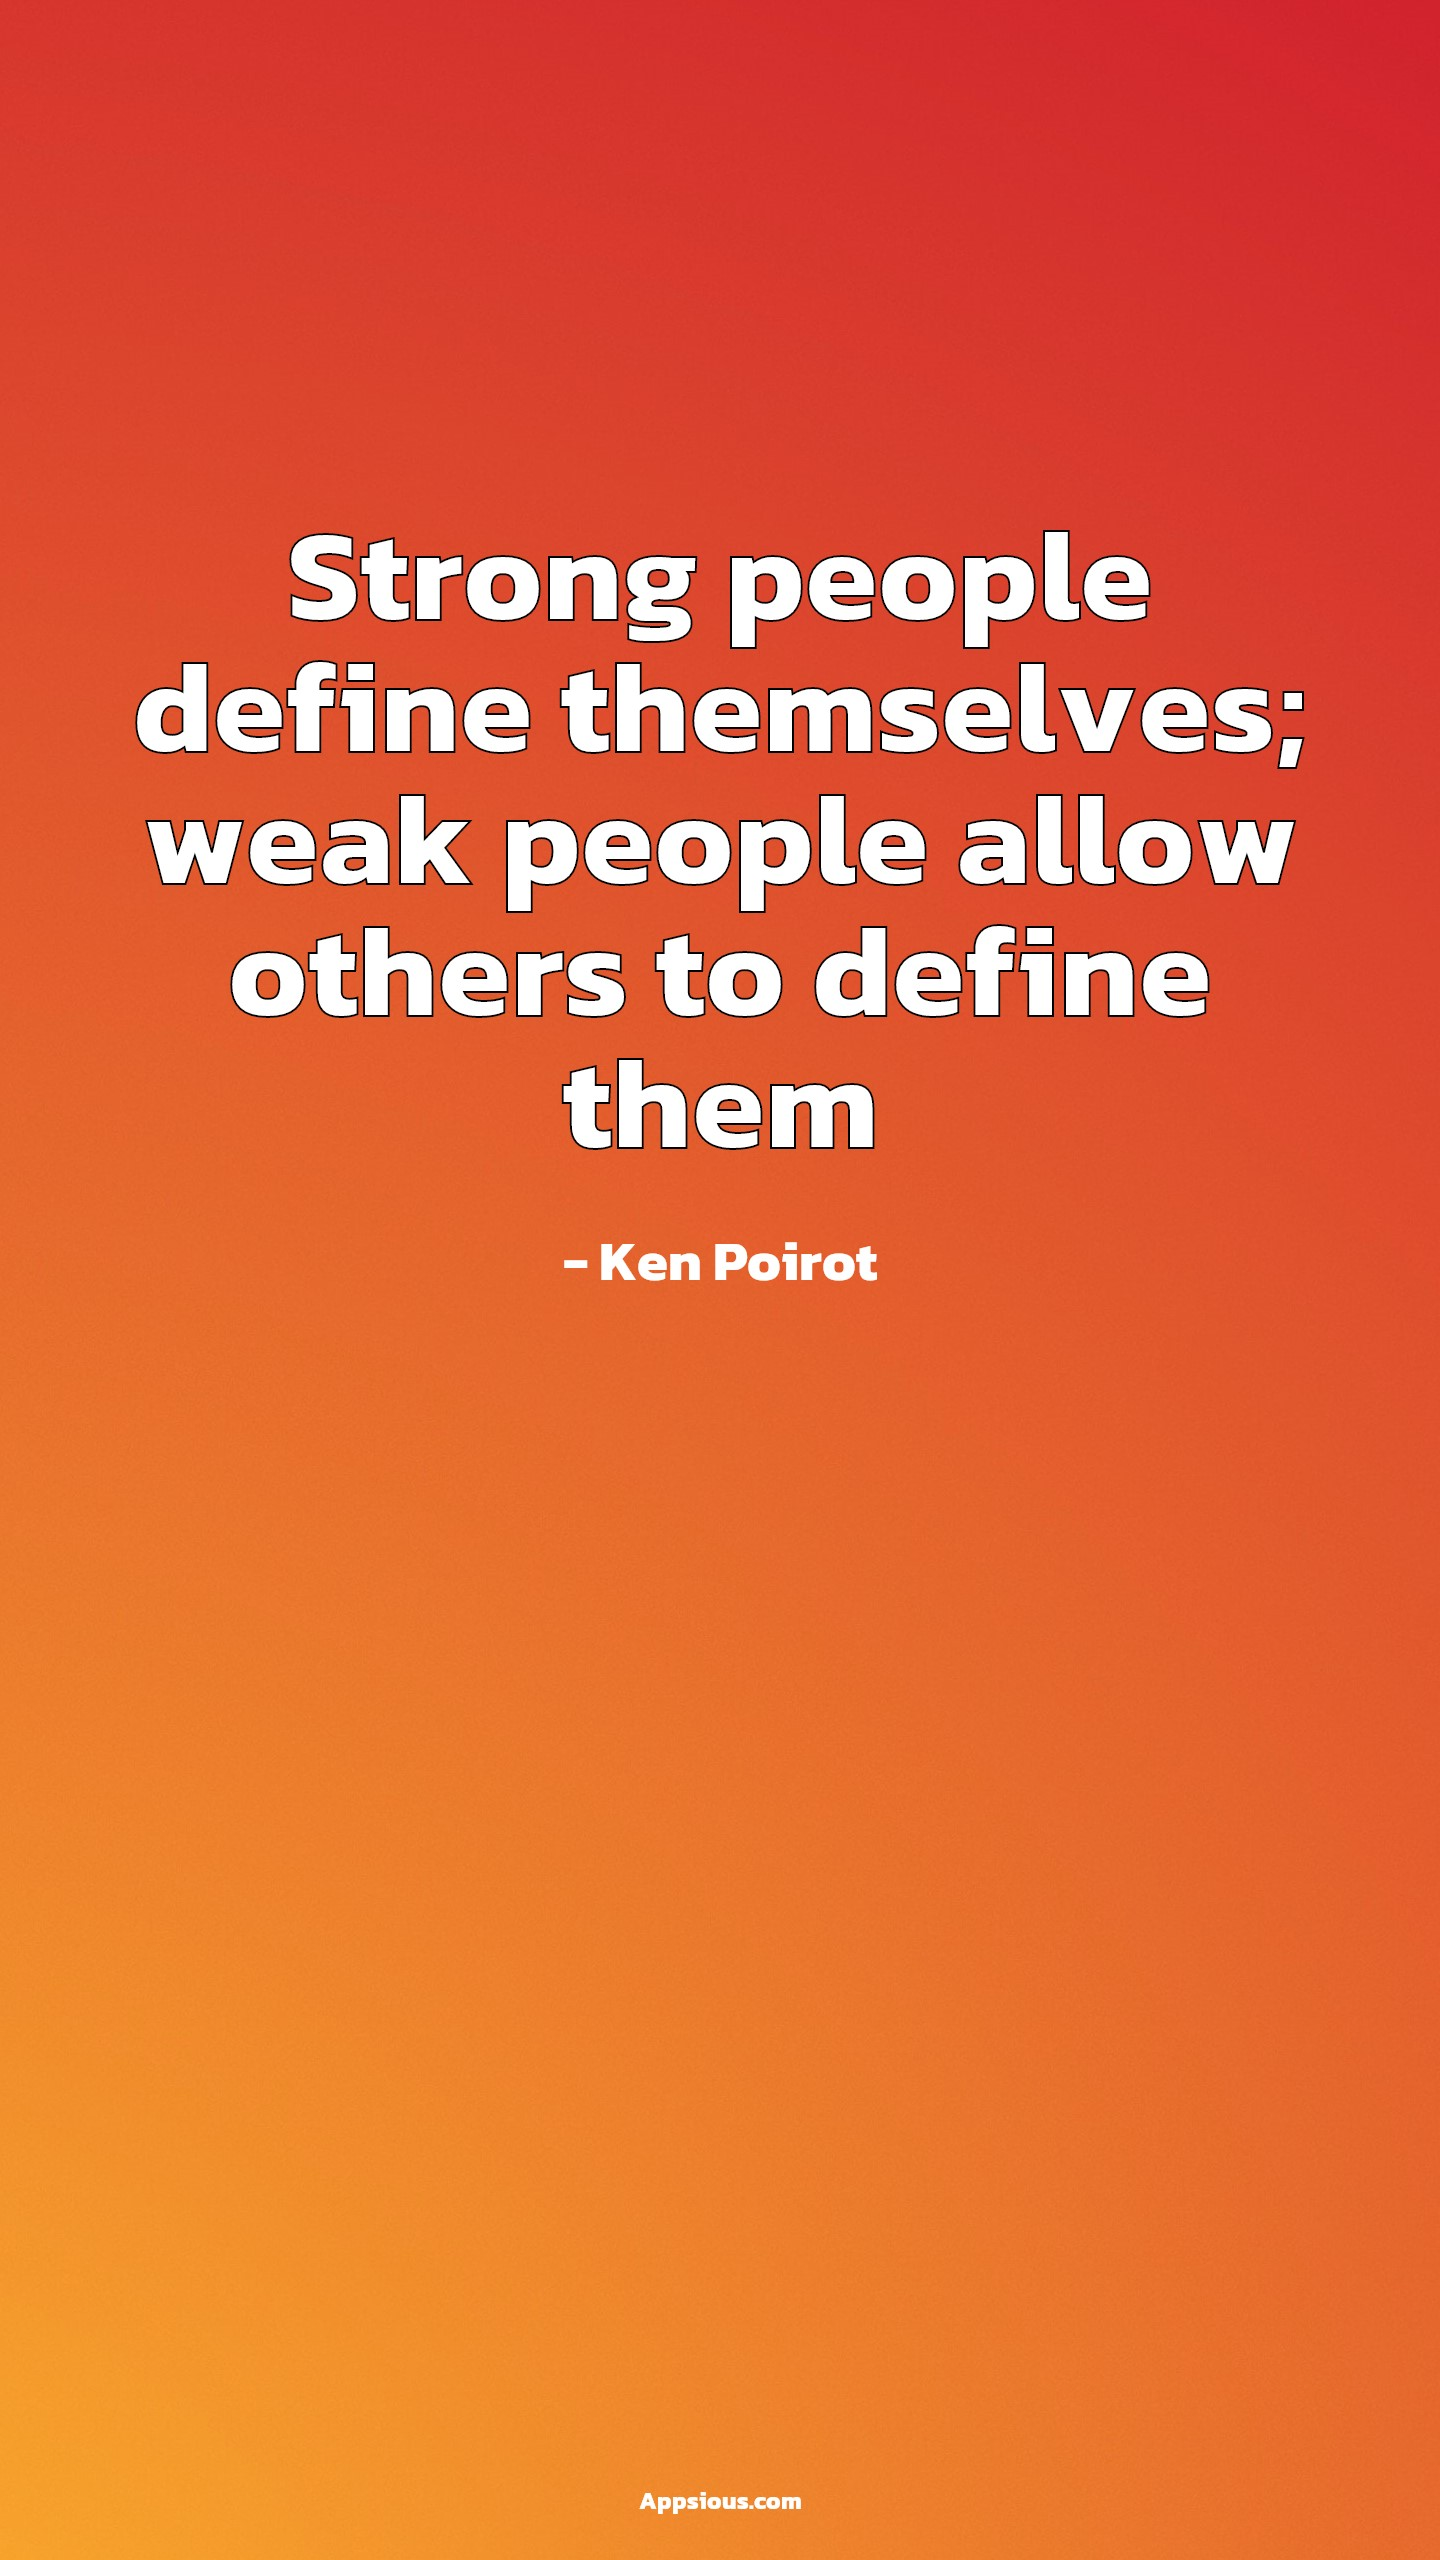 Strong people define themselves; weak people allow others to define them